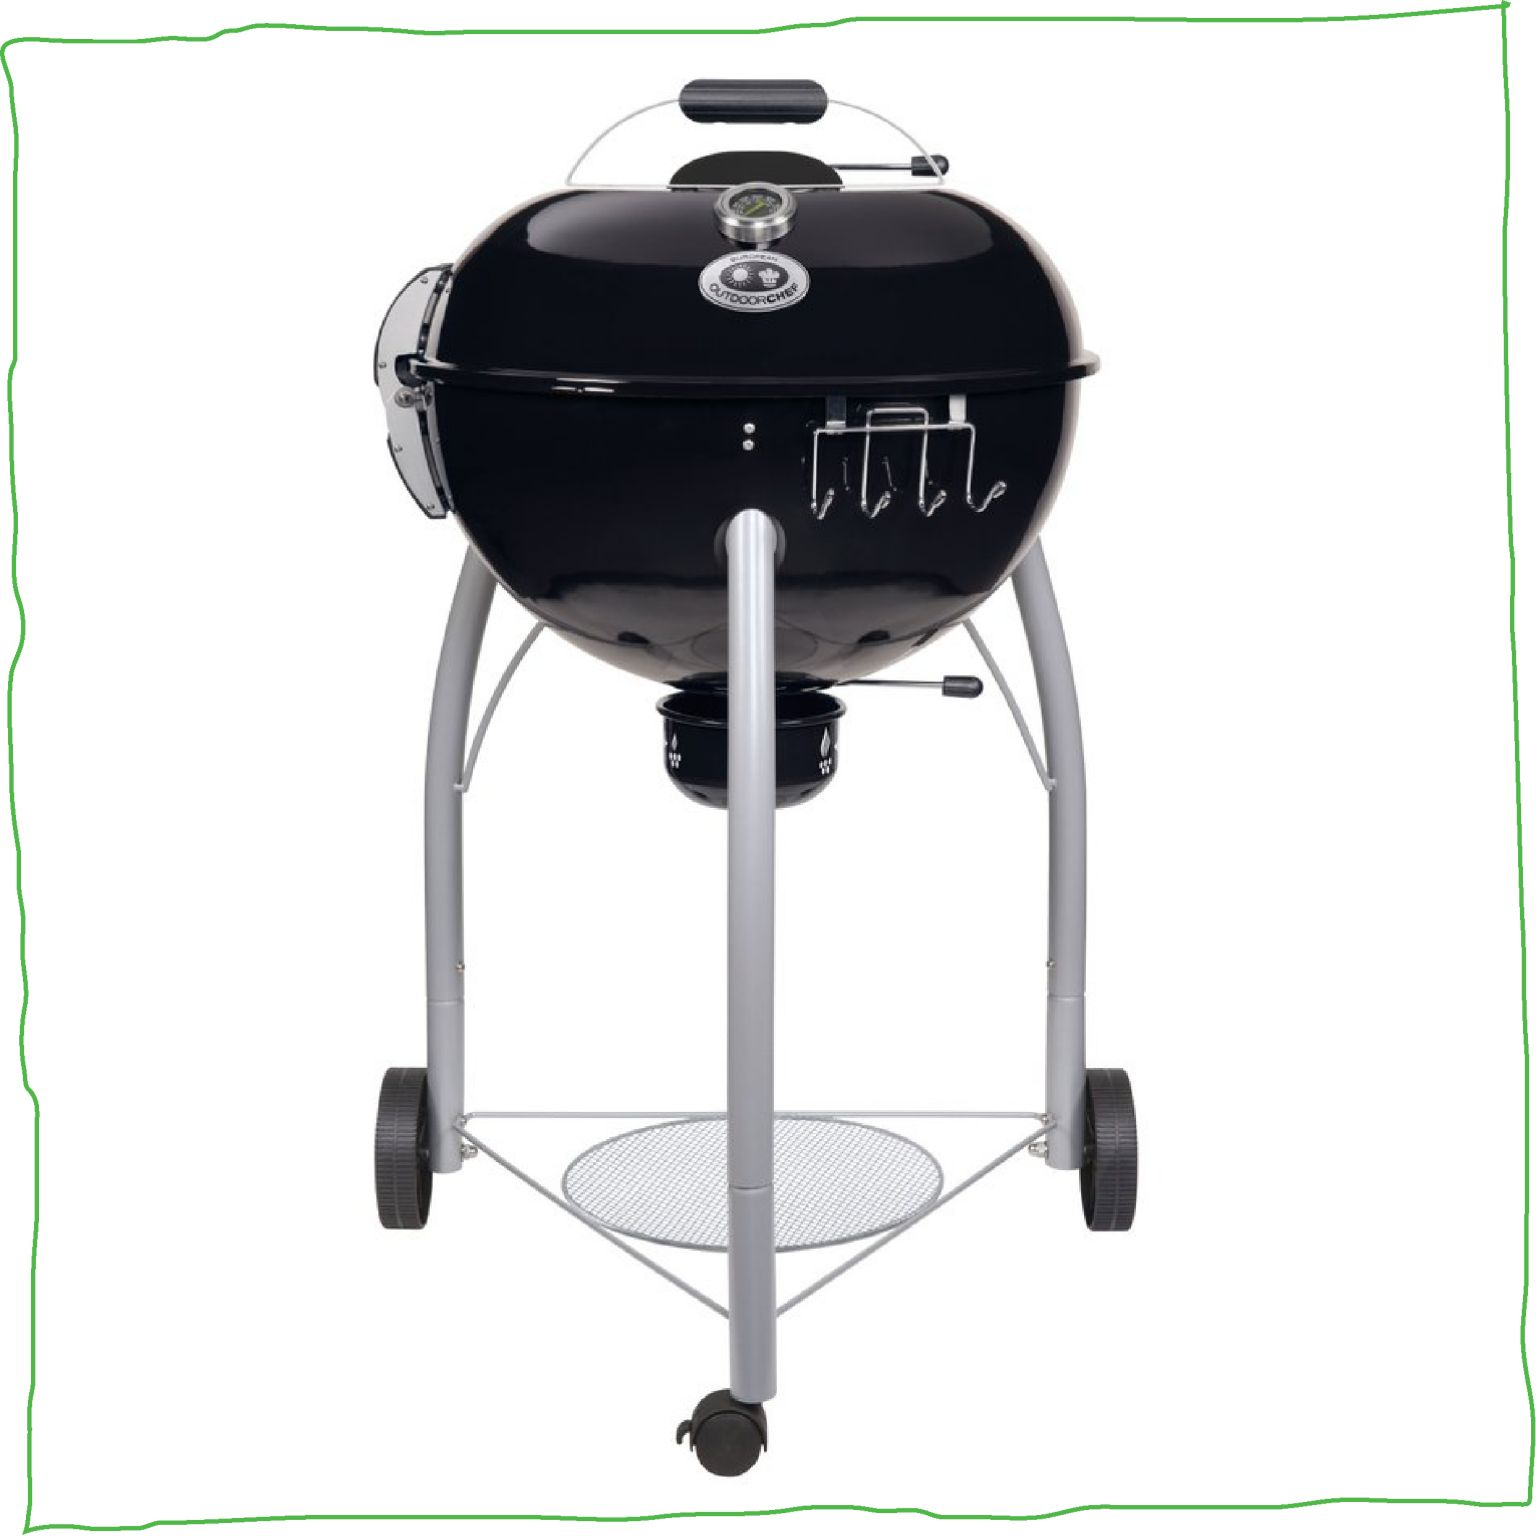 outdoorchef rover 570 c barbecues almeer plant. Black Bedroom Furniture Sets. Home Design Ideas